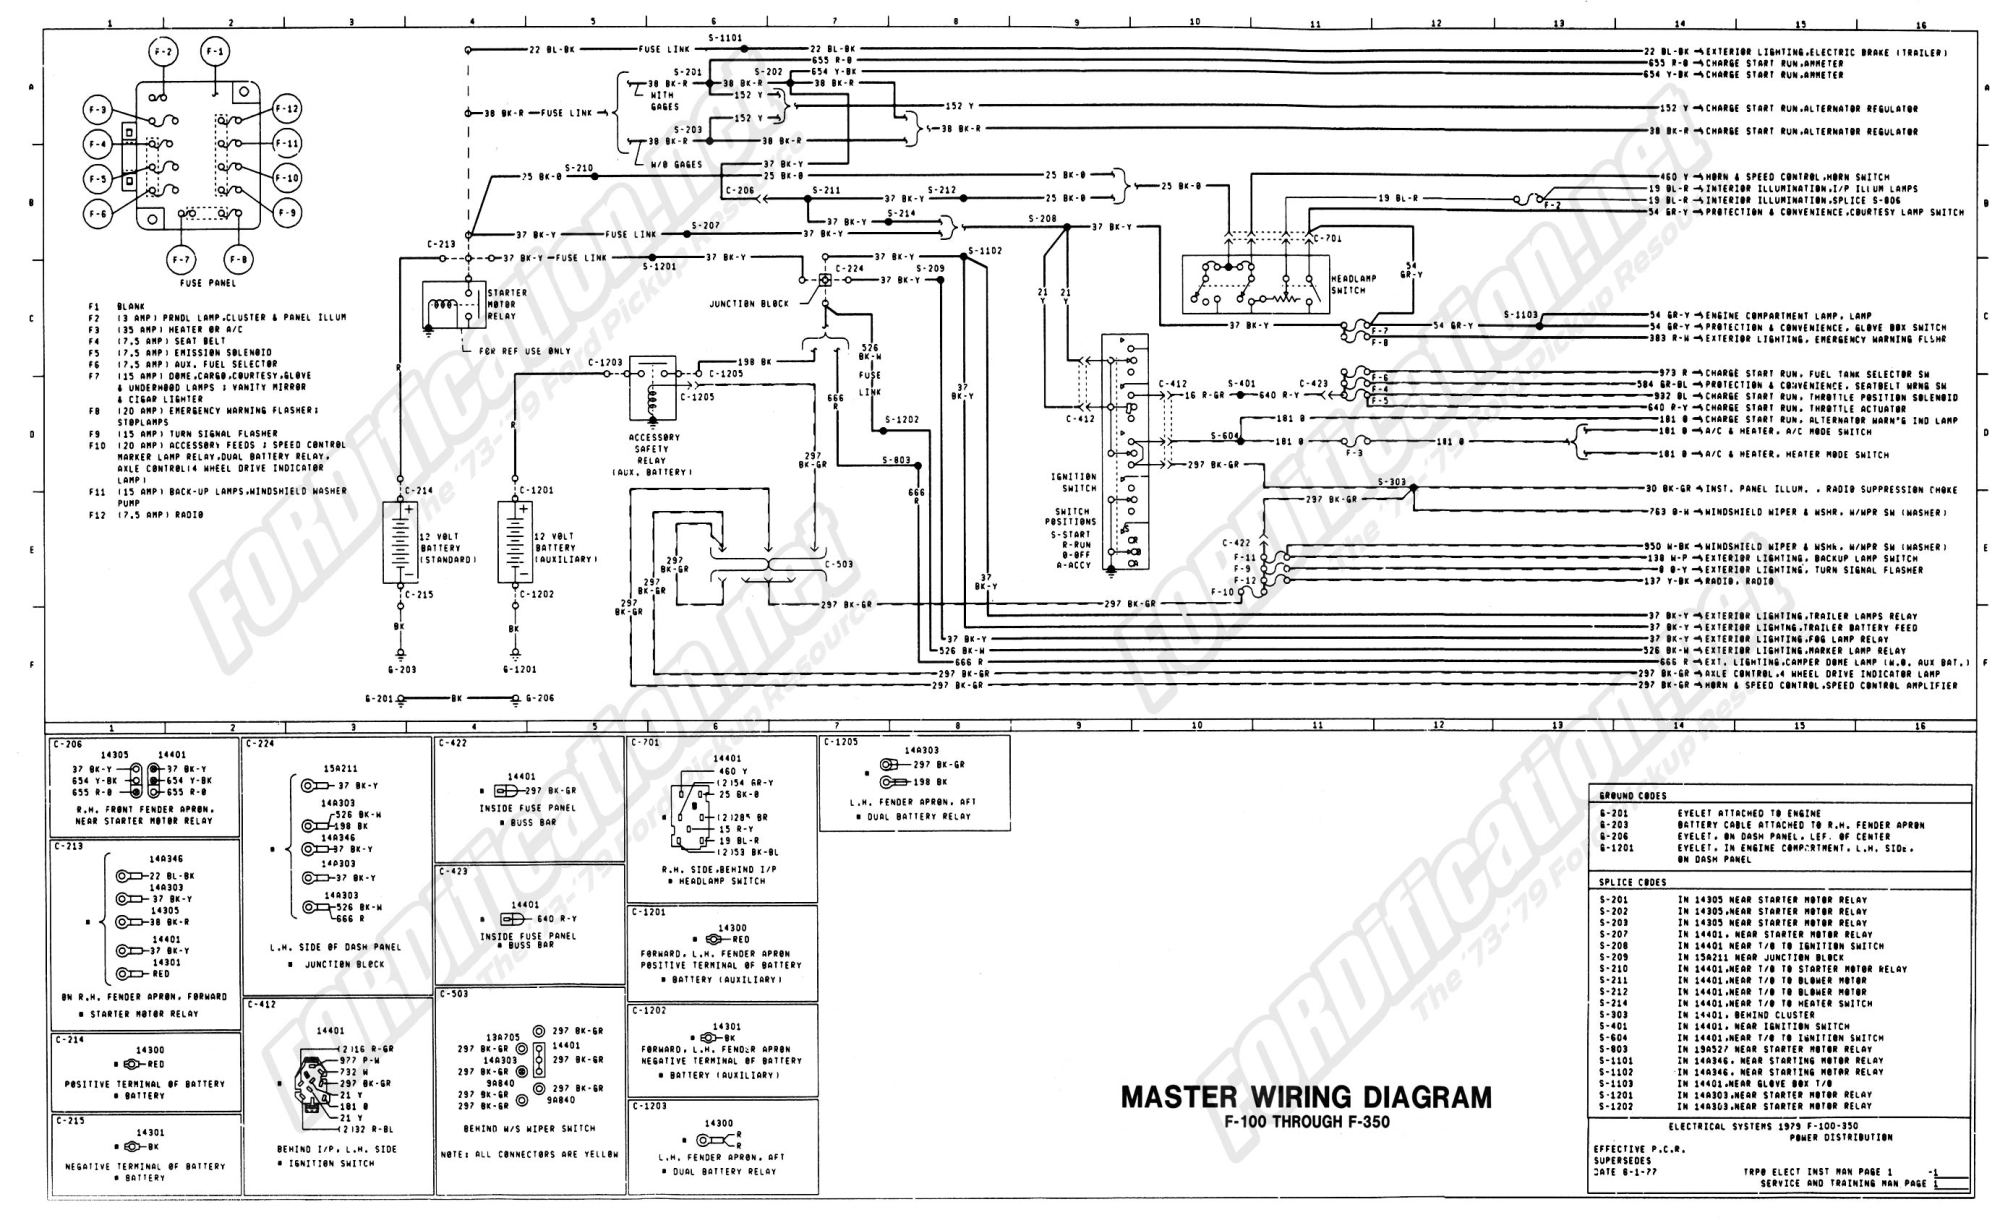 hight resolution of 1974 f100 ignition switch wiring diagram automotive wiring diagrams gm ignition switch wiring diagram 1974 ford ignition wiring diagram